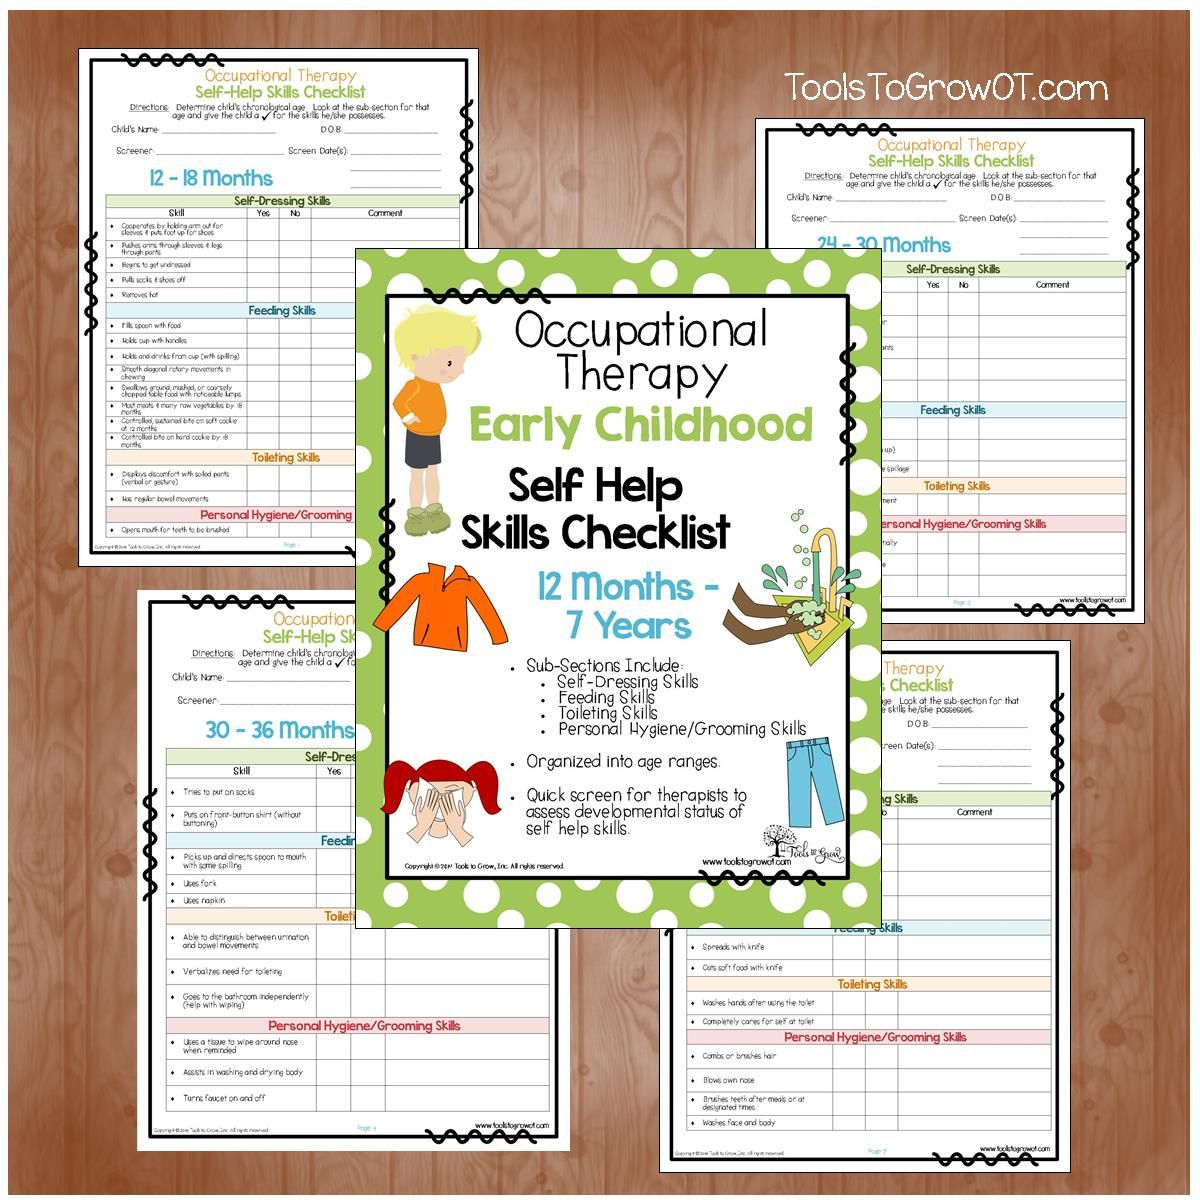 Early Childhood Self Help Skills Checklist Quick Screen For Therapists To Assess Developmental